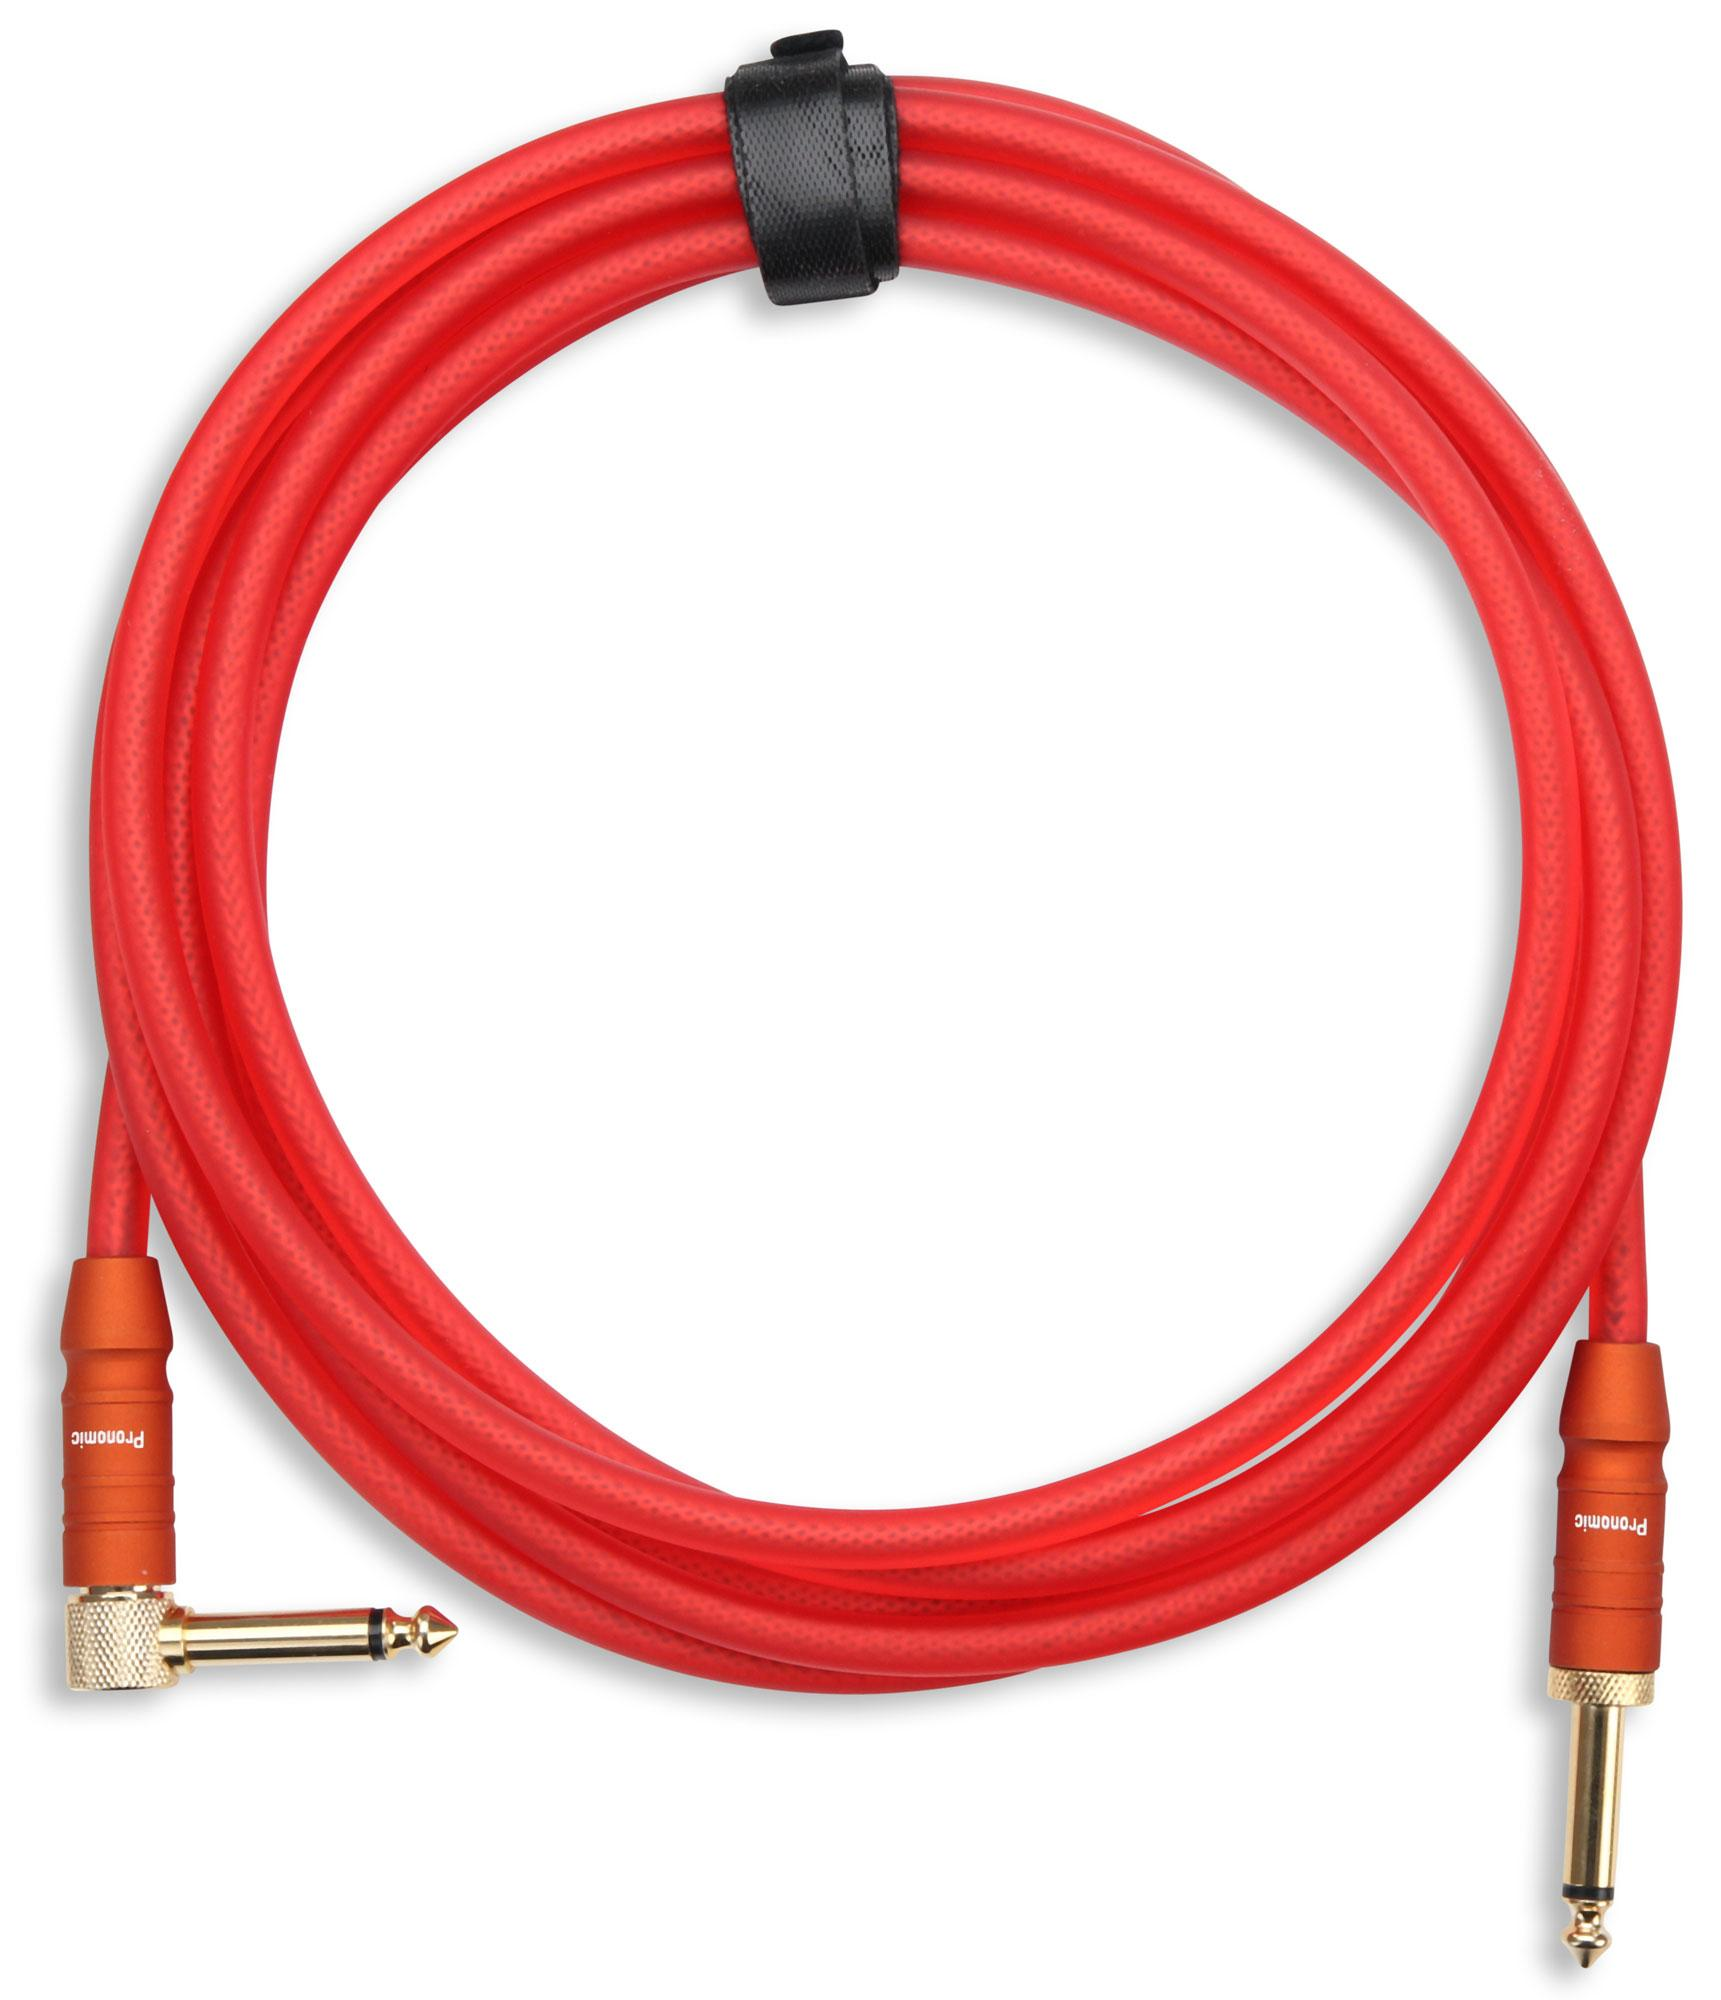 Pronomic Trendline INST-3R Instrument Cable 3m red